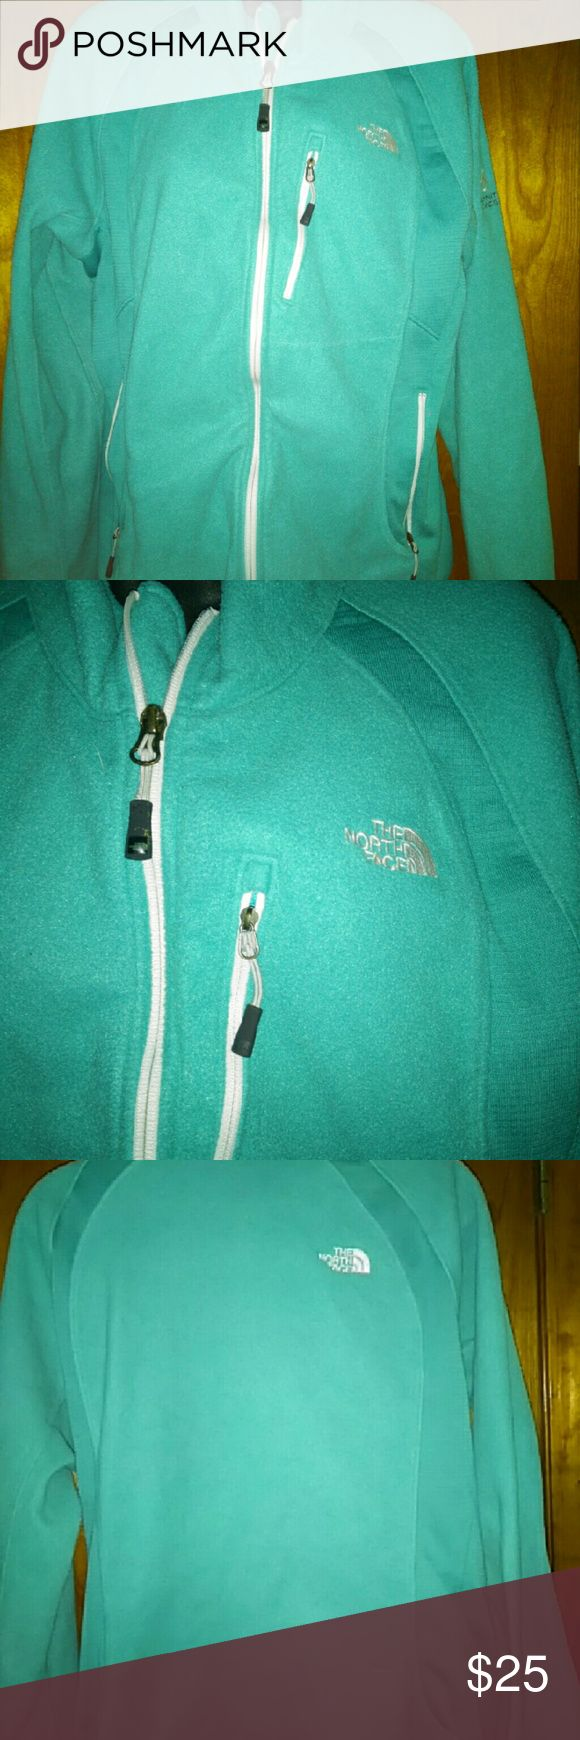 THE NORTH FACE fleece ladies jacket THE NORTH FACE fleece ladies jacket Teal blue gorgeous color Zip up front Size med? The North Face Jackets & Coats